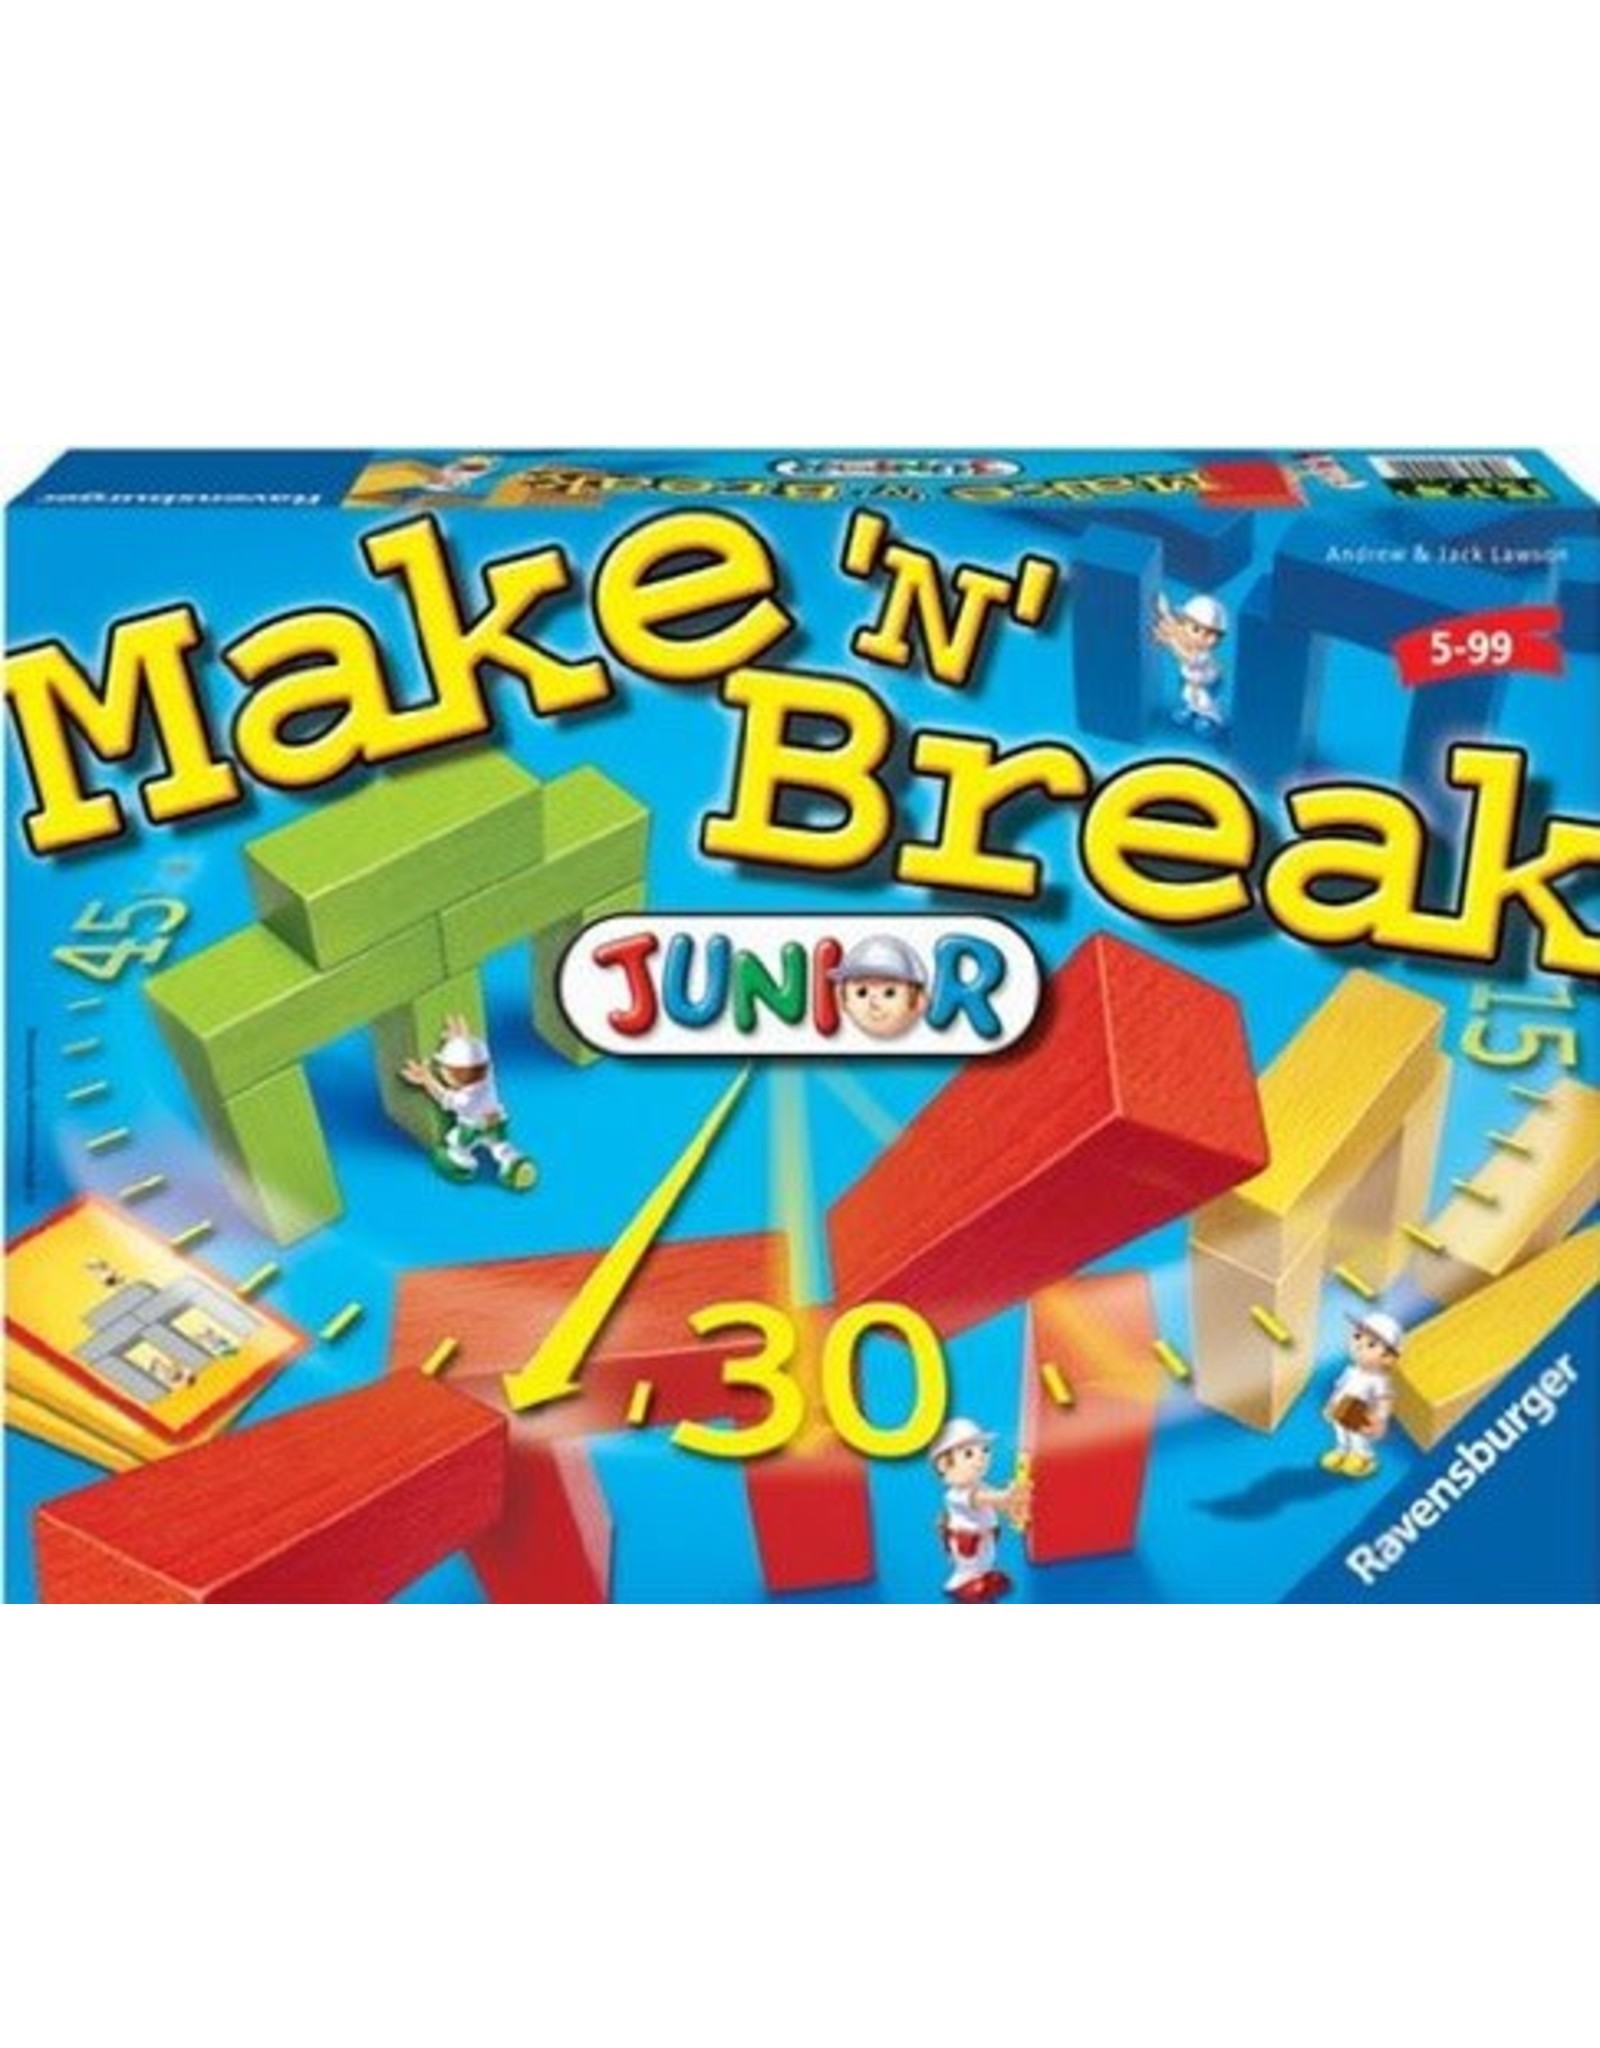 Ravensburger Make n' Break Junior